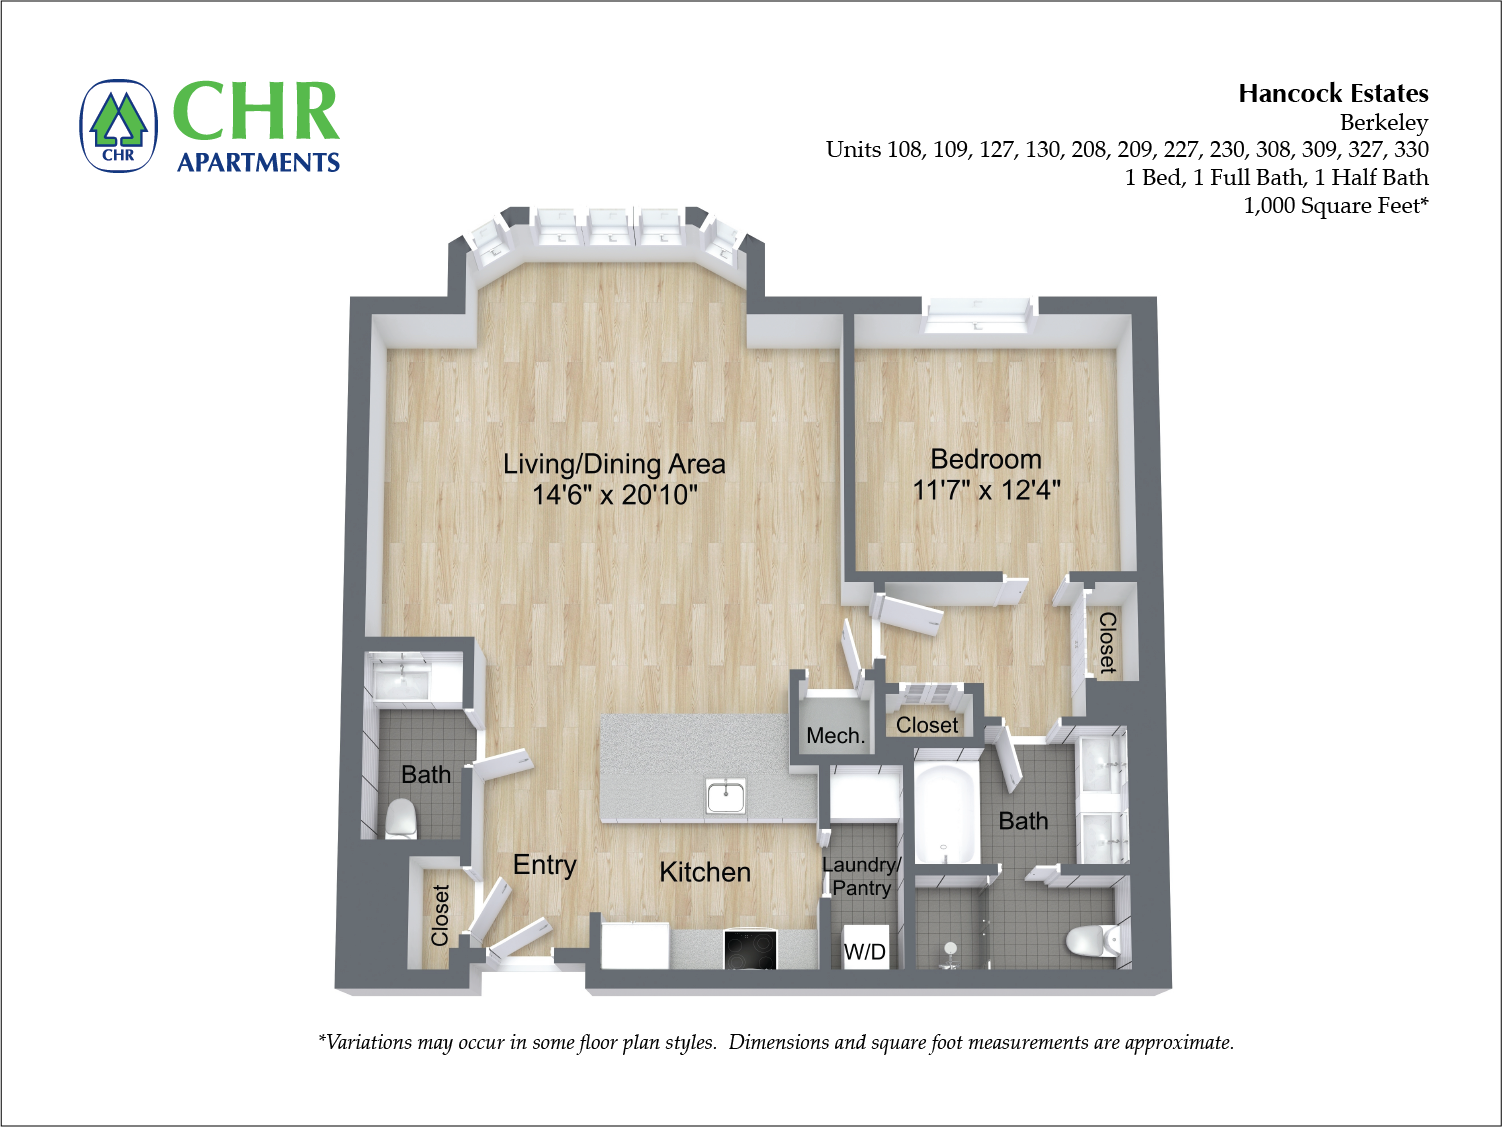 Click to view 1 BR 1.5 BA floor plan gallery